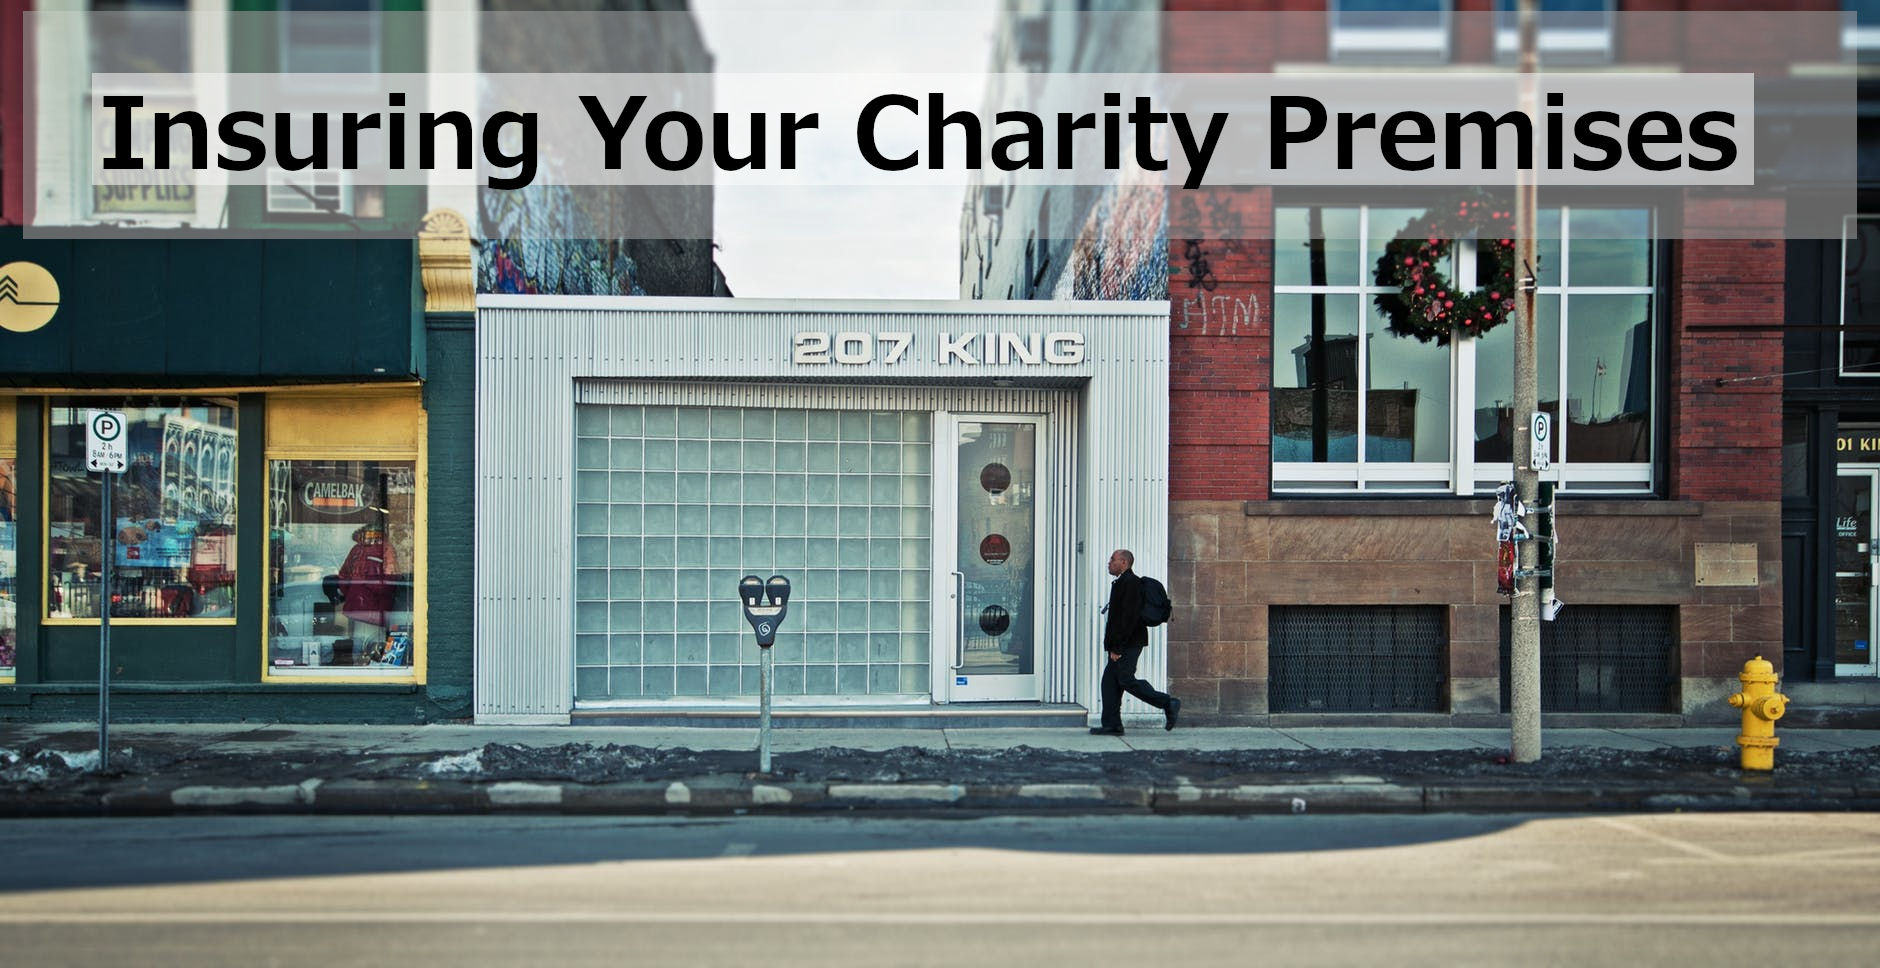 Insuring charity premises